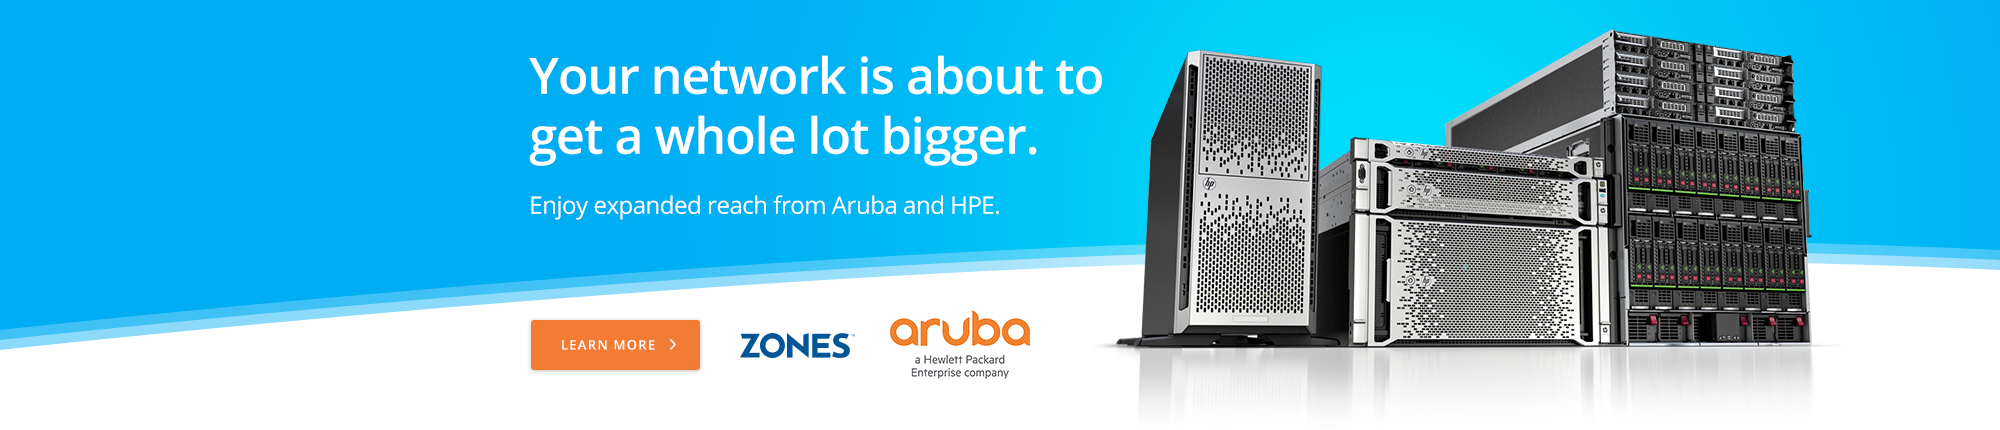 Your network is about to get a whole lot bigger. Enjoy expanded reach from Aruba and HPE.